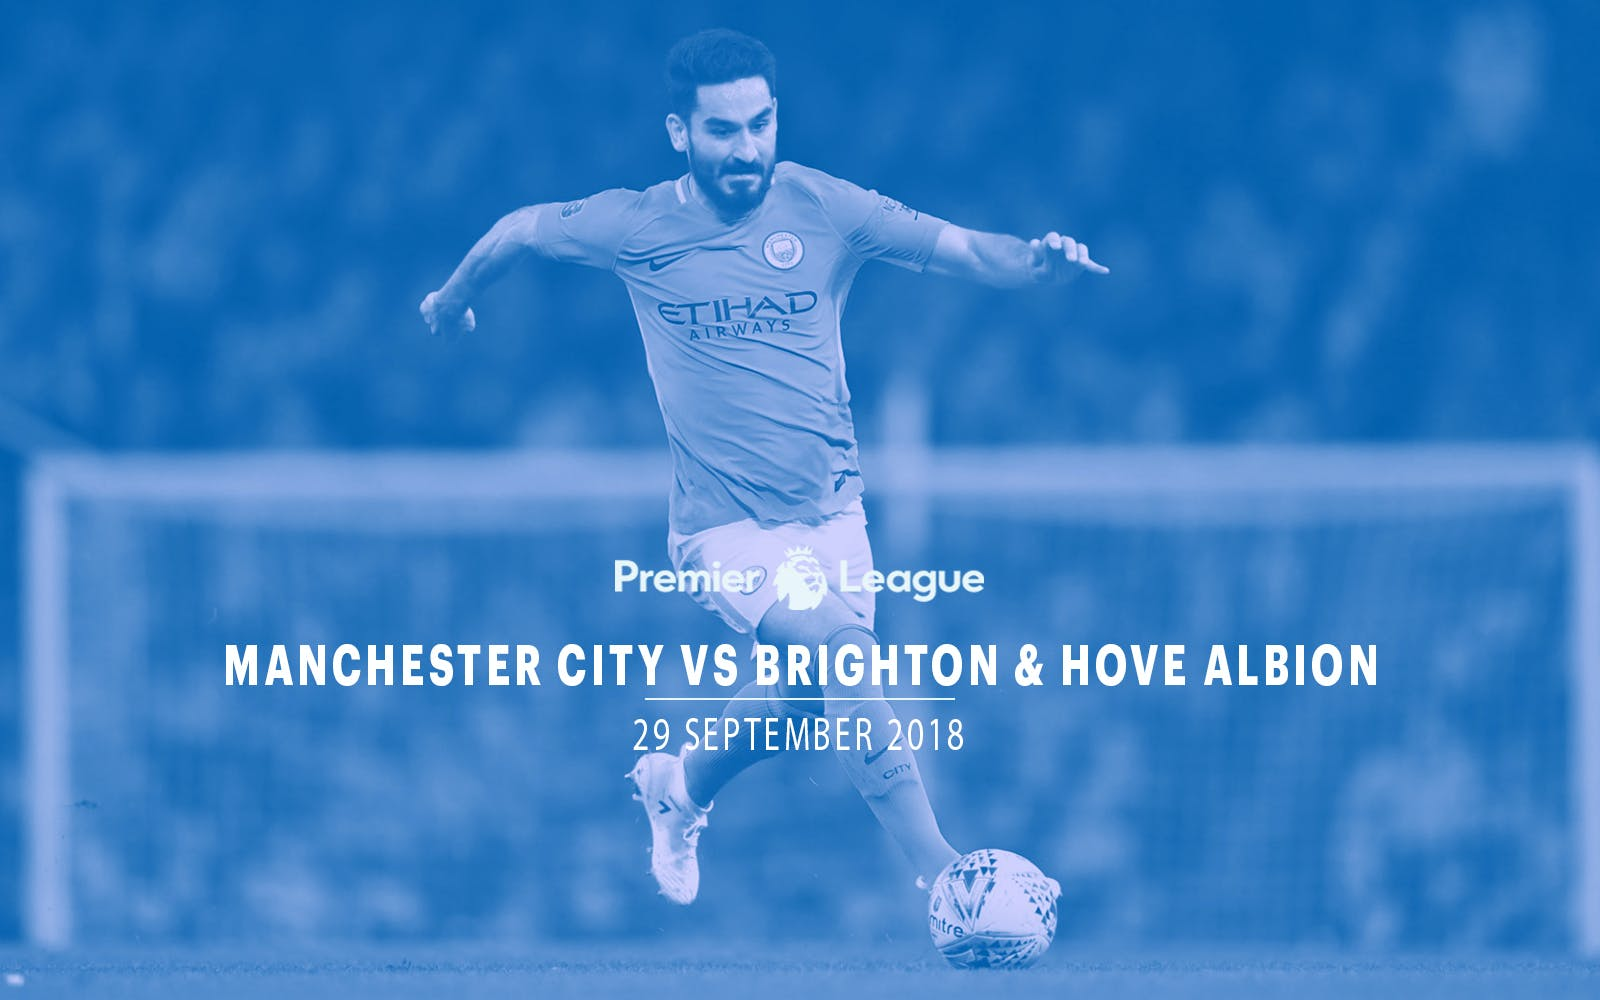 Manchester City vs Brighton & Hove Albion - 29th Sept'18